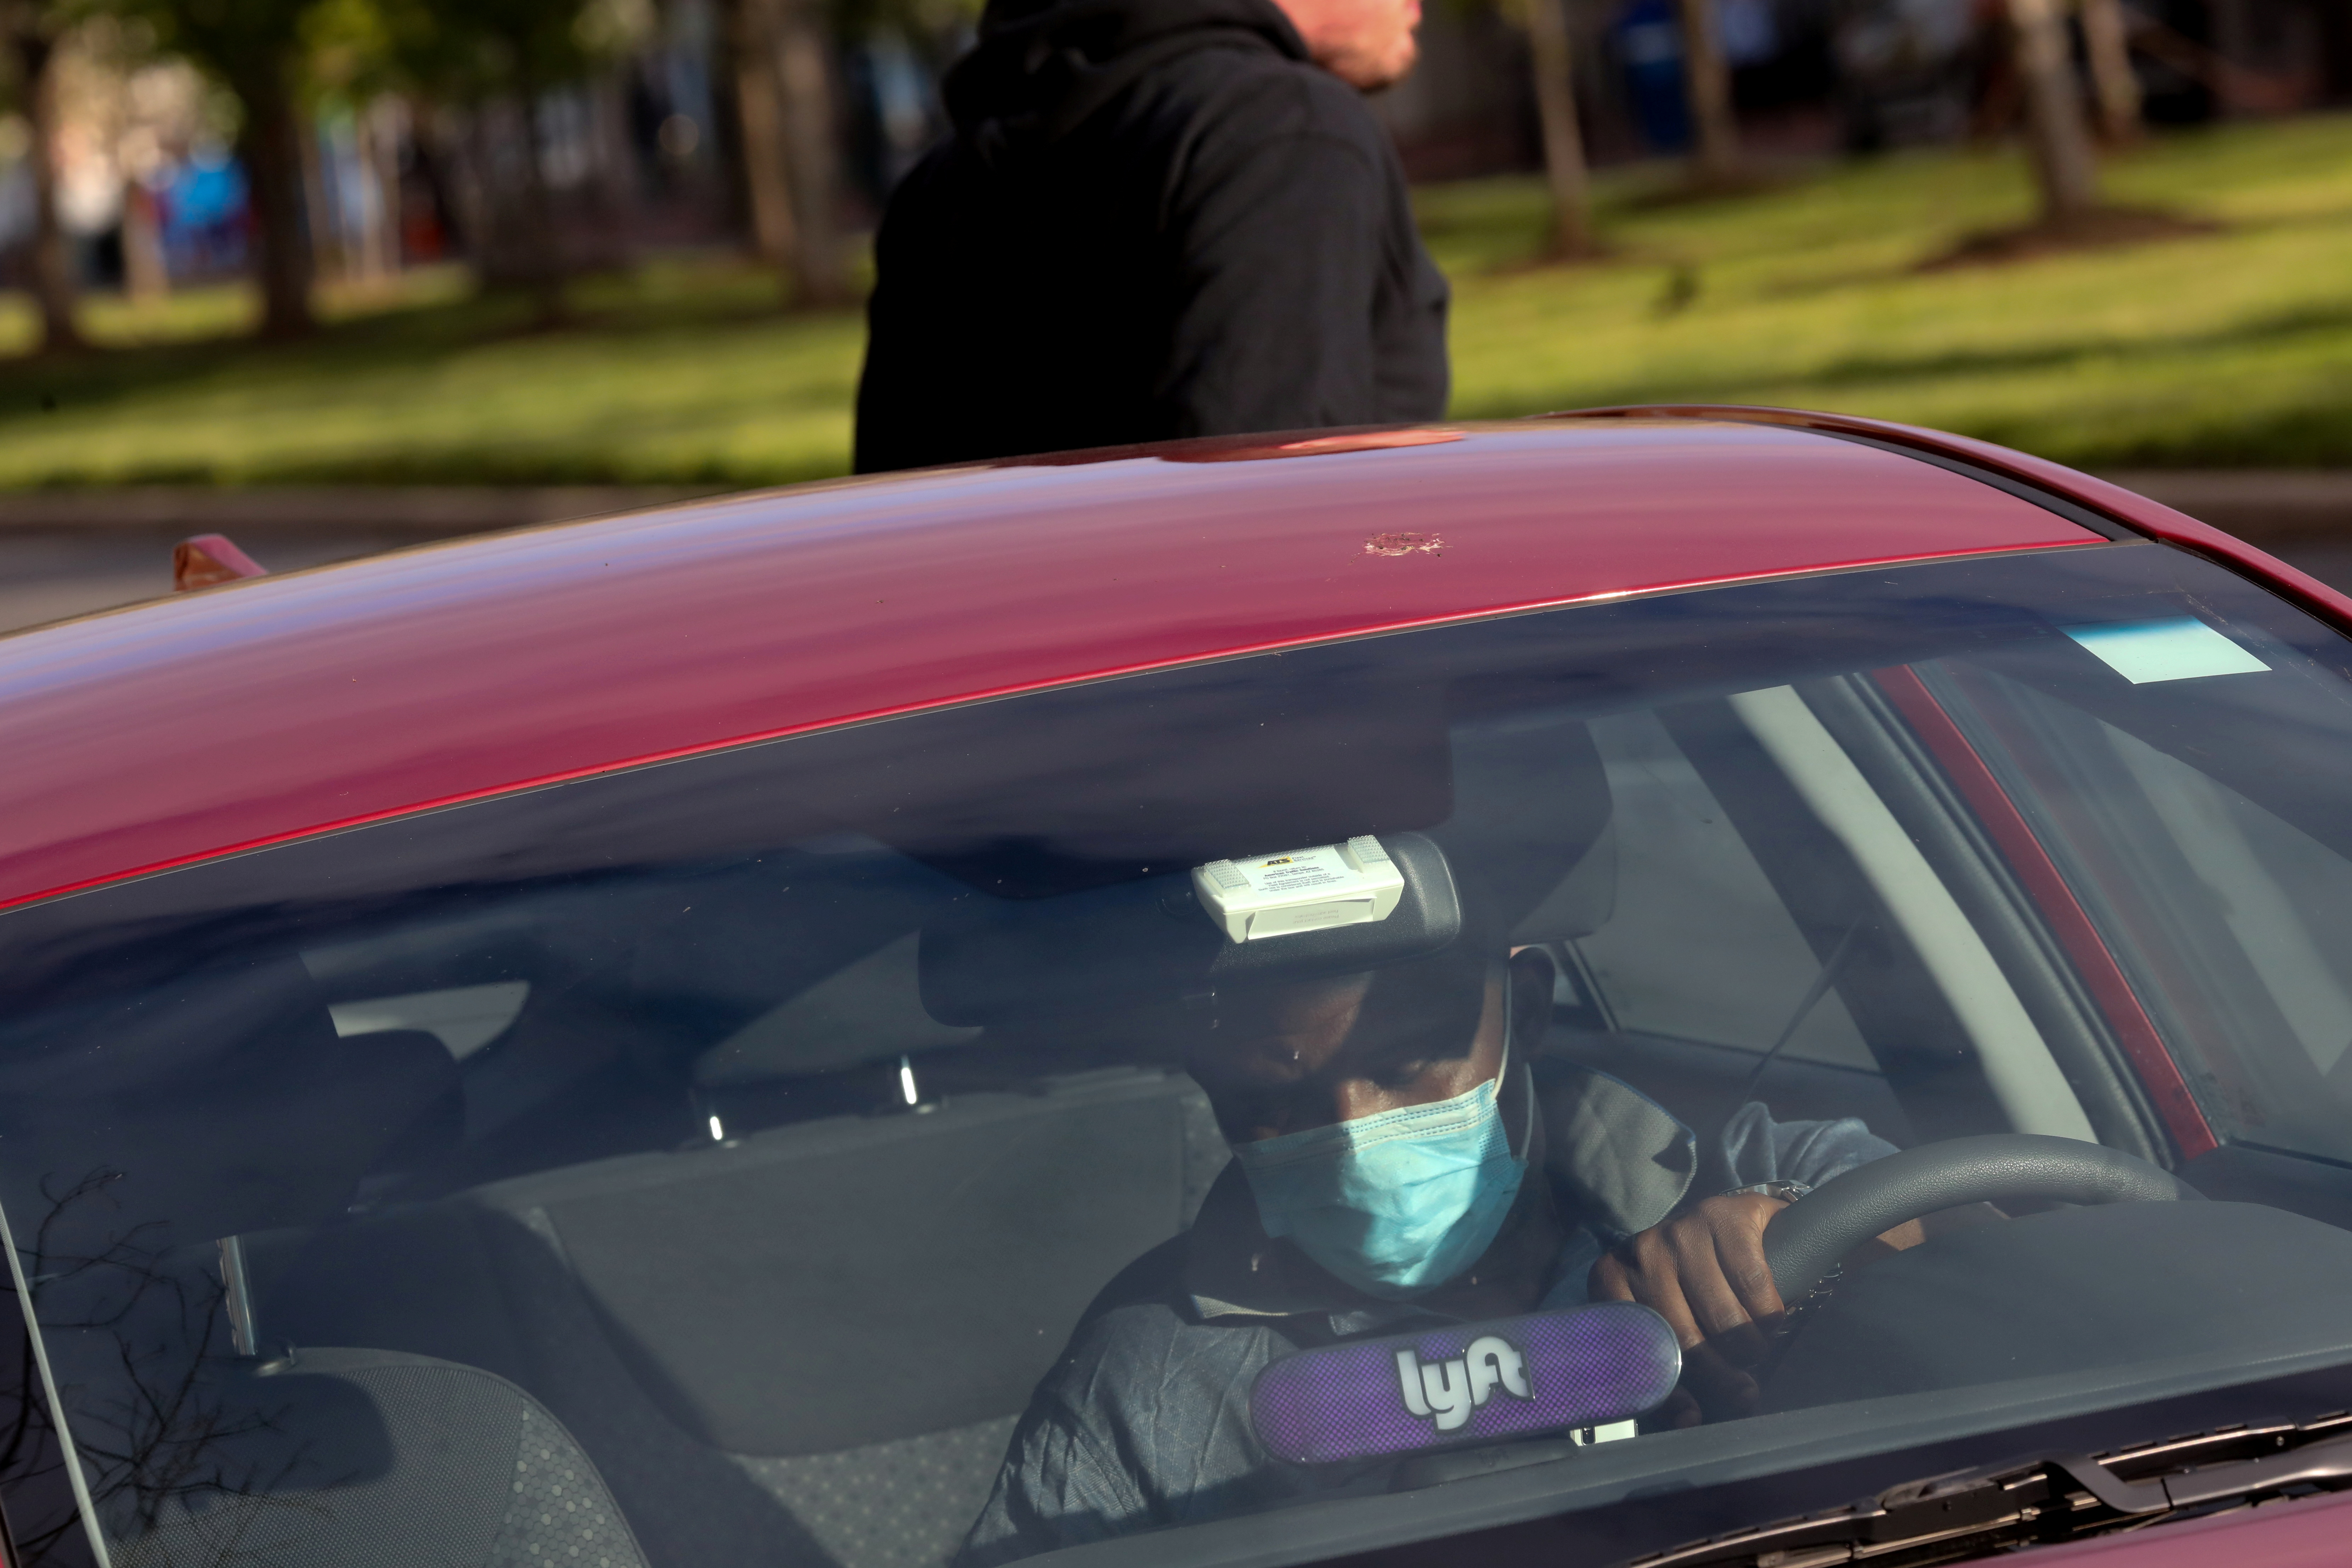 A Lyft rideshare driver wears a mask during the coronavirus outbreak, as he leaves passengers in the U.S. Capitol Hill neighborhood in Washington, U.S. April 1, 2020.  REUTERS/Jonathan Ernst/File Photo